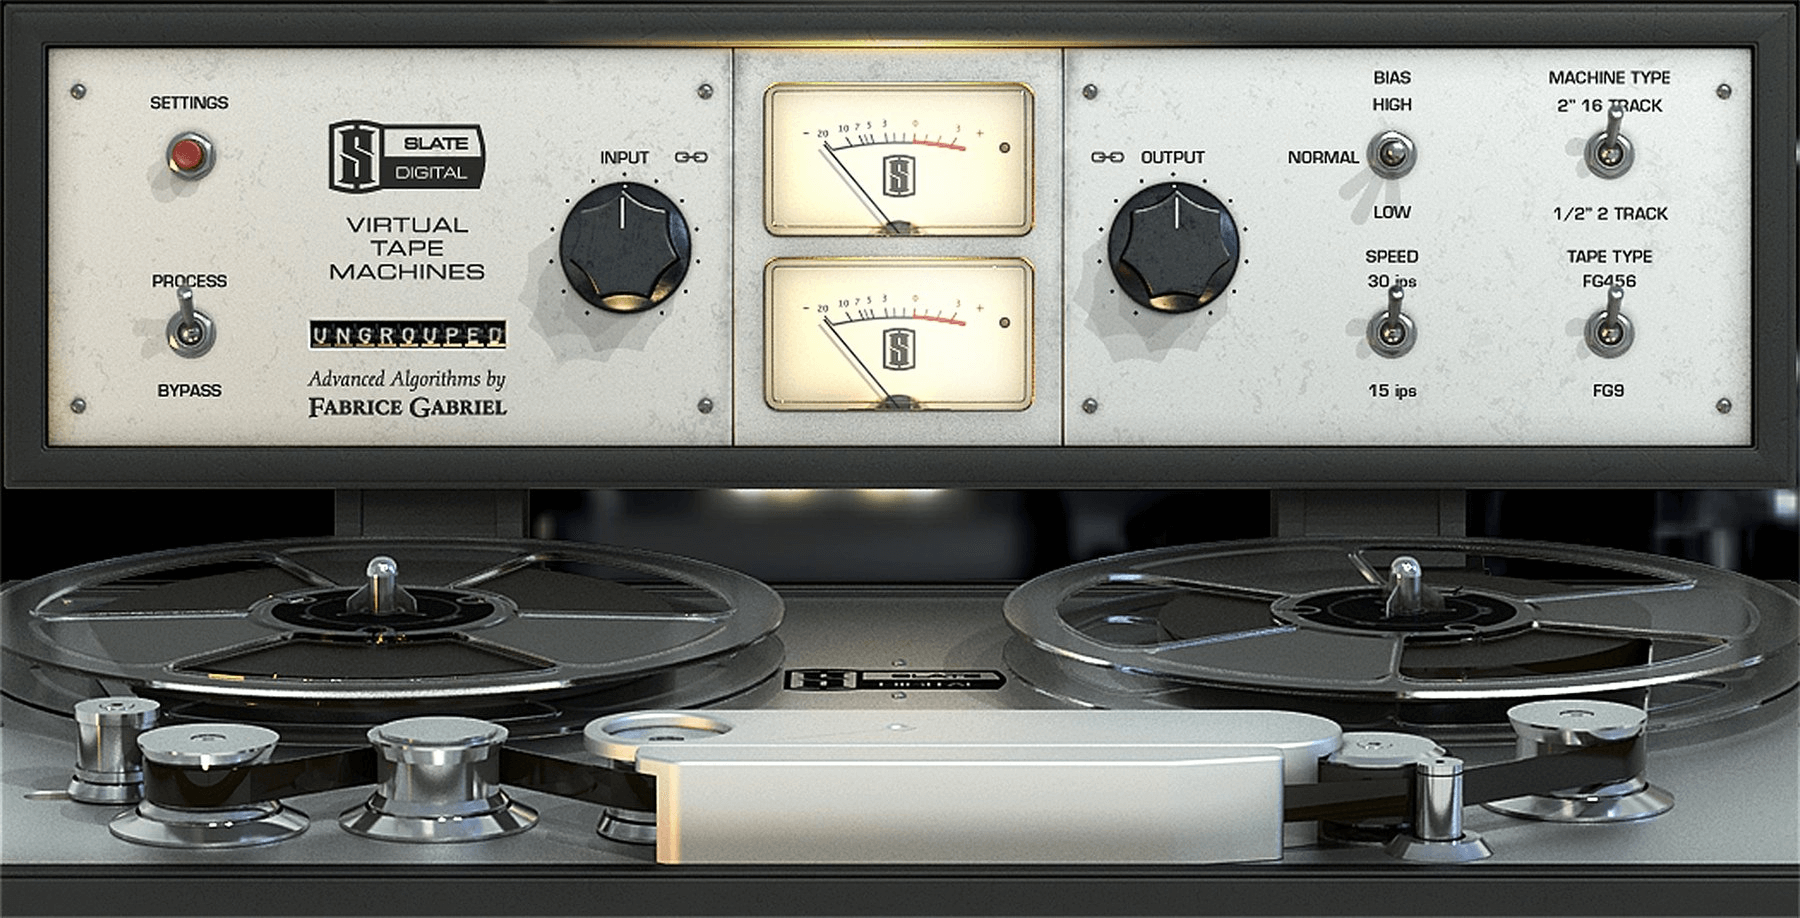 Slate Digital Virtual Tape Machines VTM